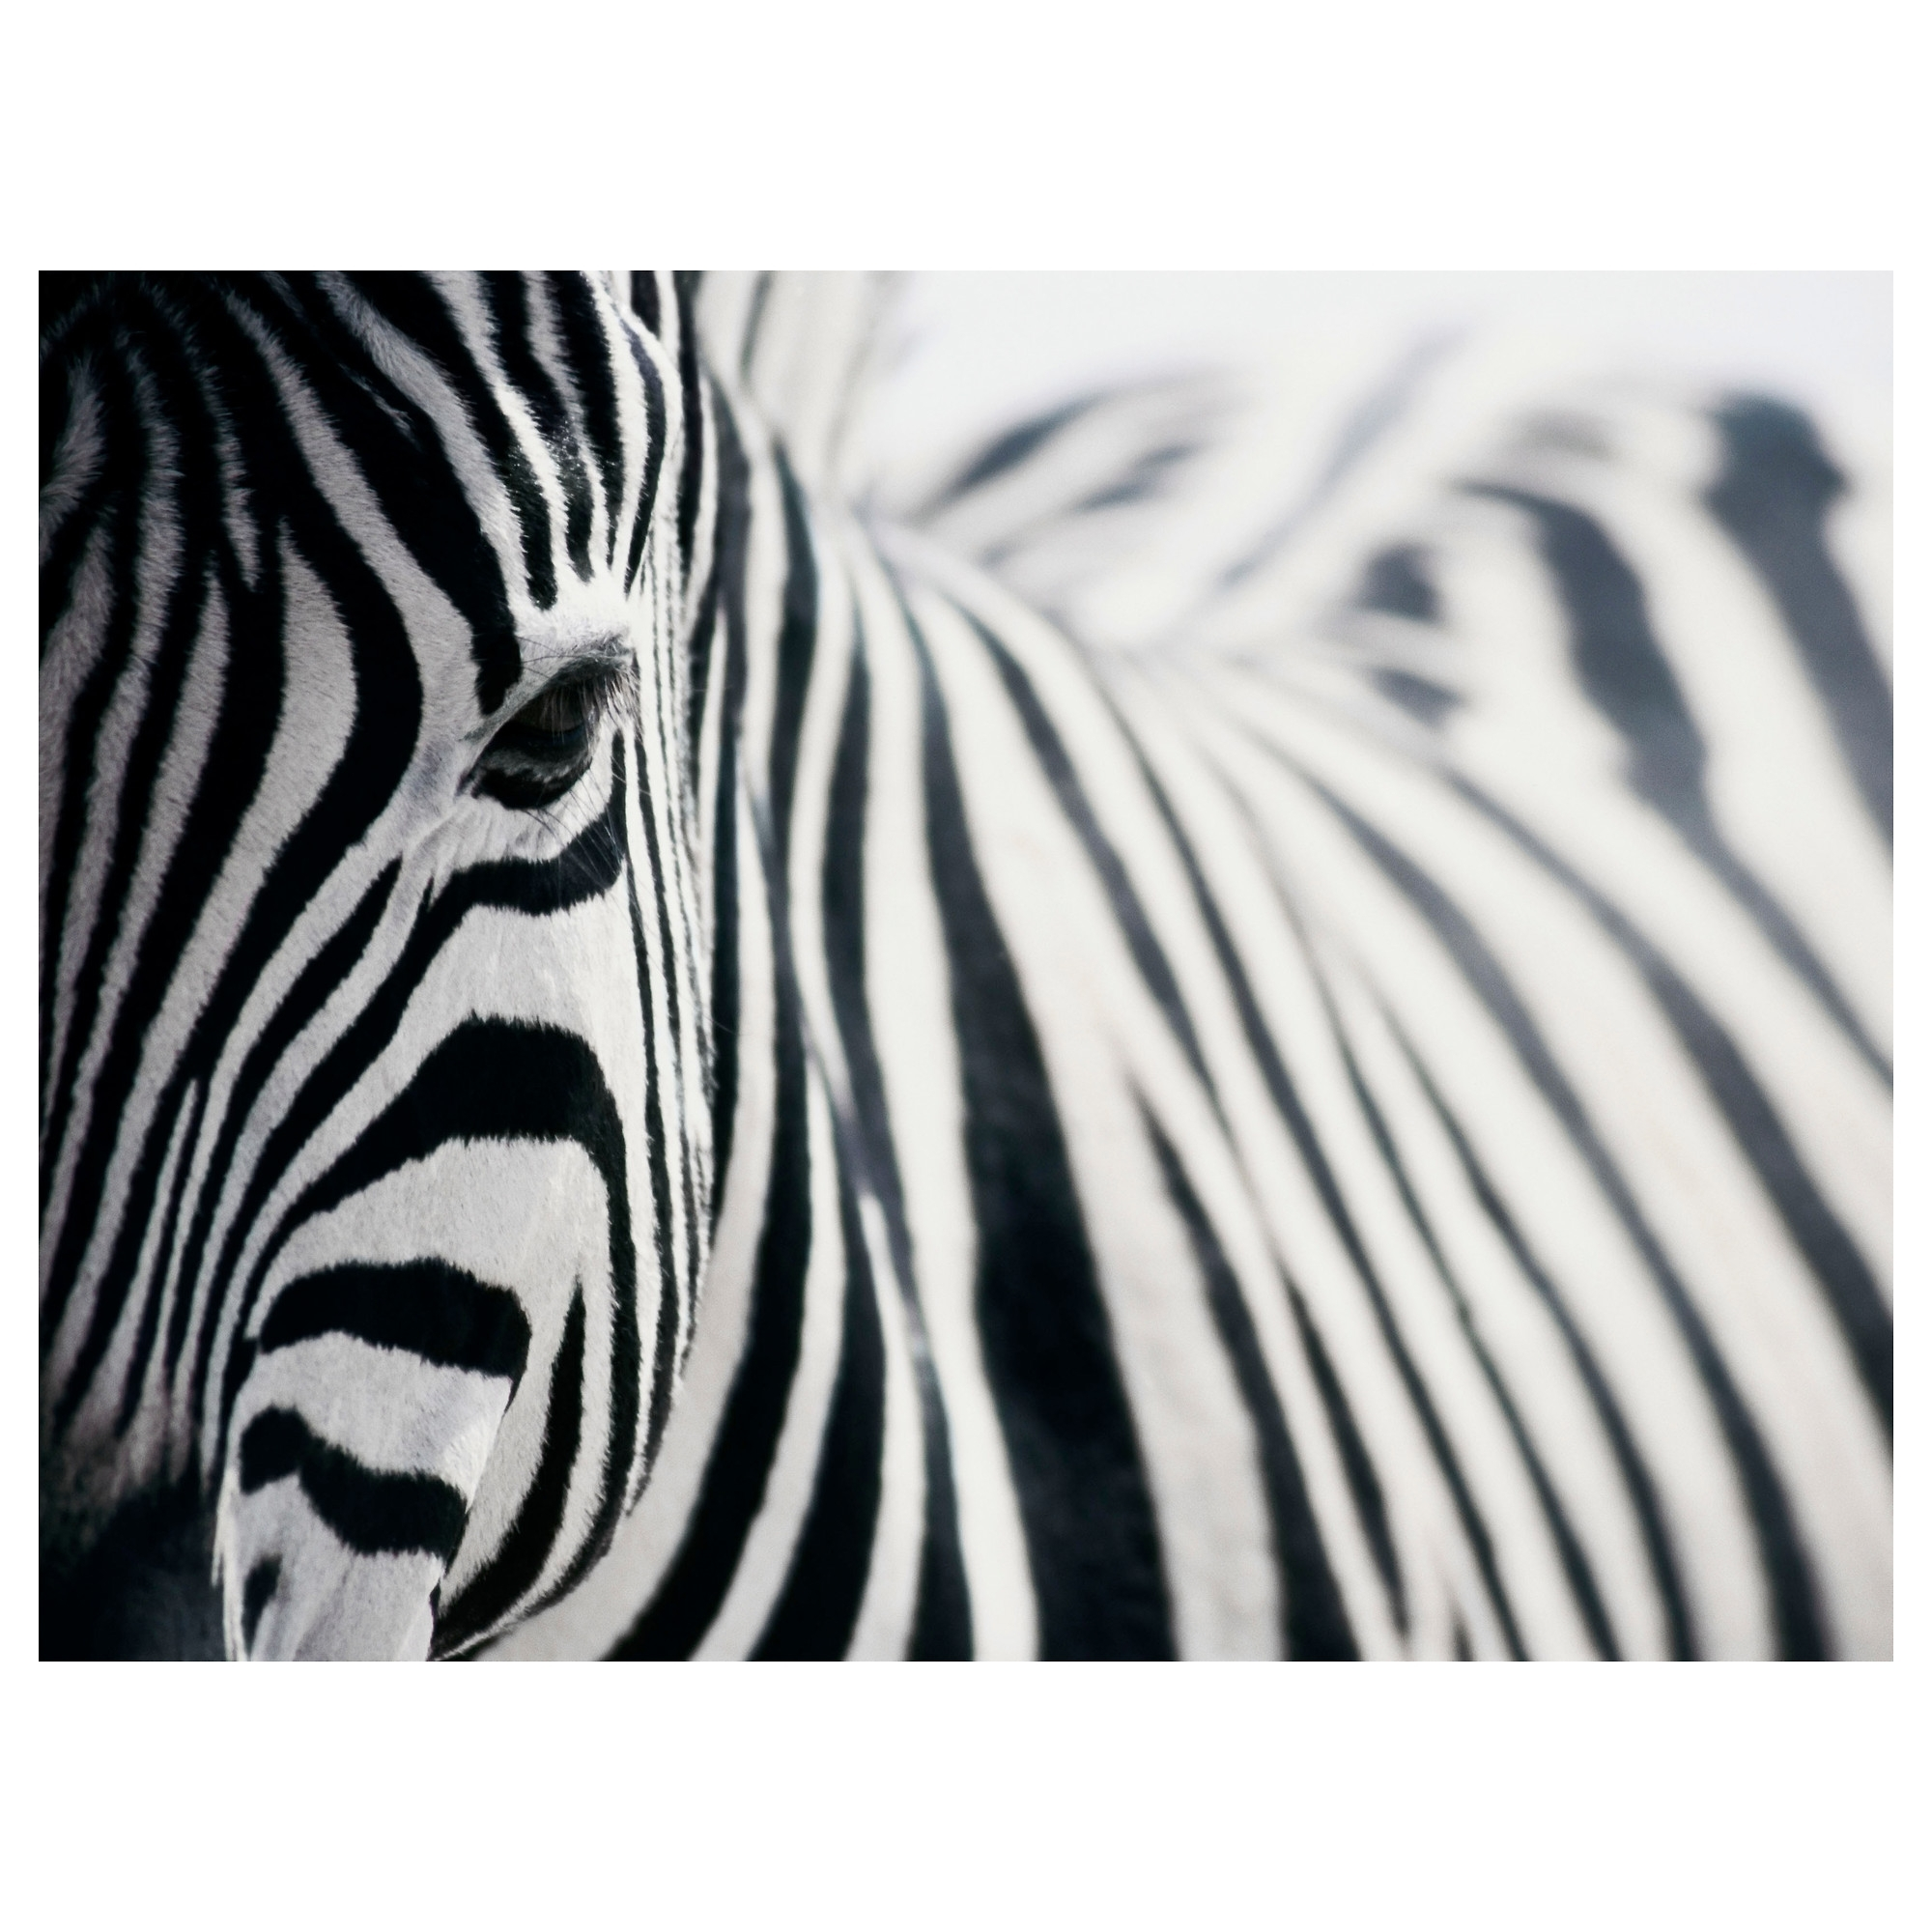 Well Known Zebra Canvas Wall Art Intended For Zebra Canvas Wall Art – Culturehoop (View 3 of 15)